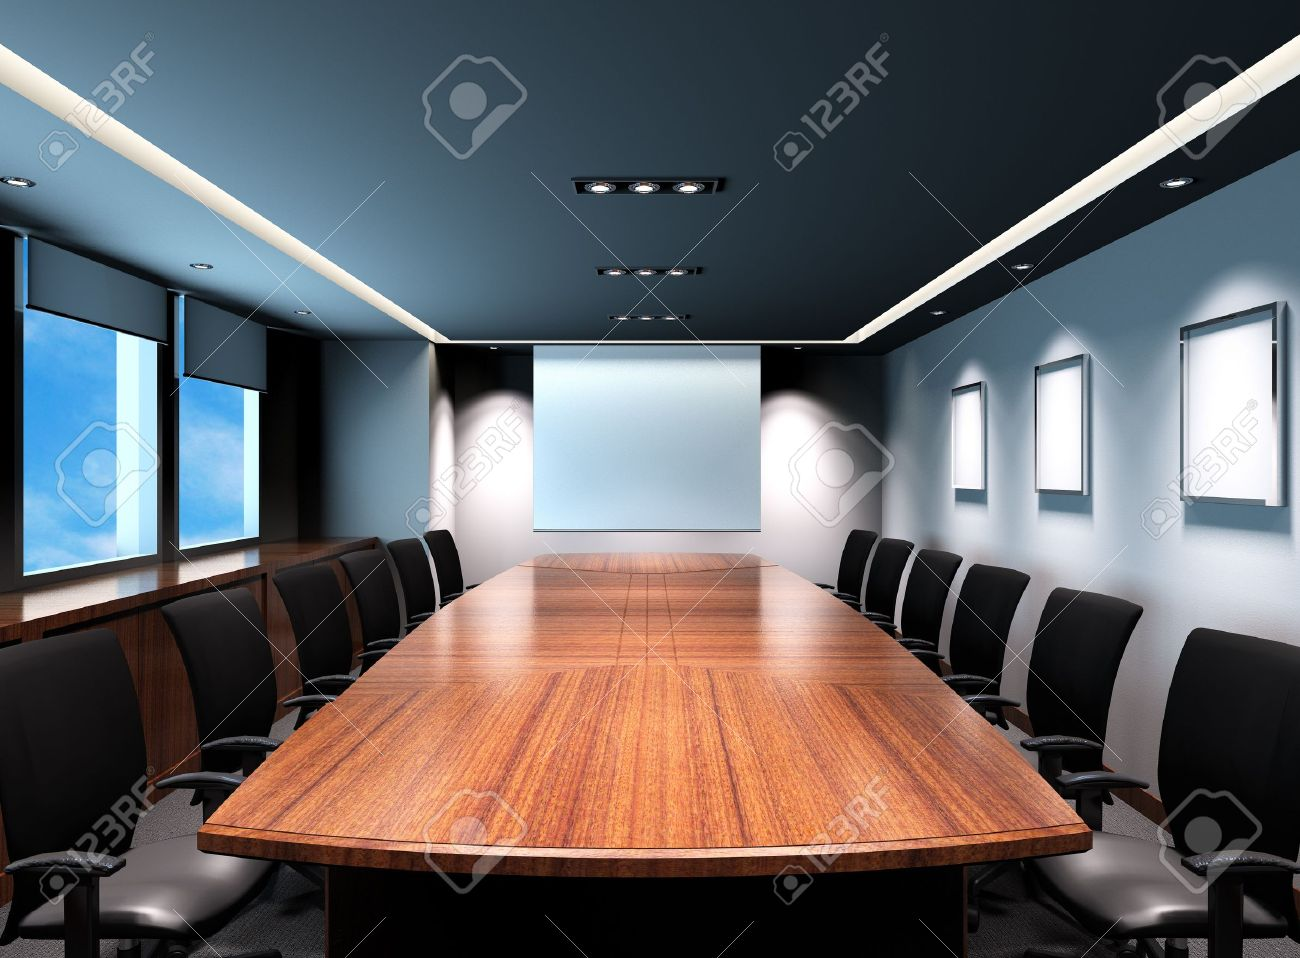 Business meeting room in office with modern decoration Stock Photo - 15750616